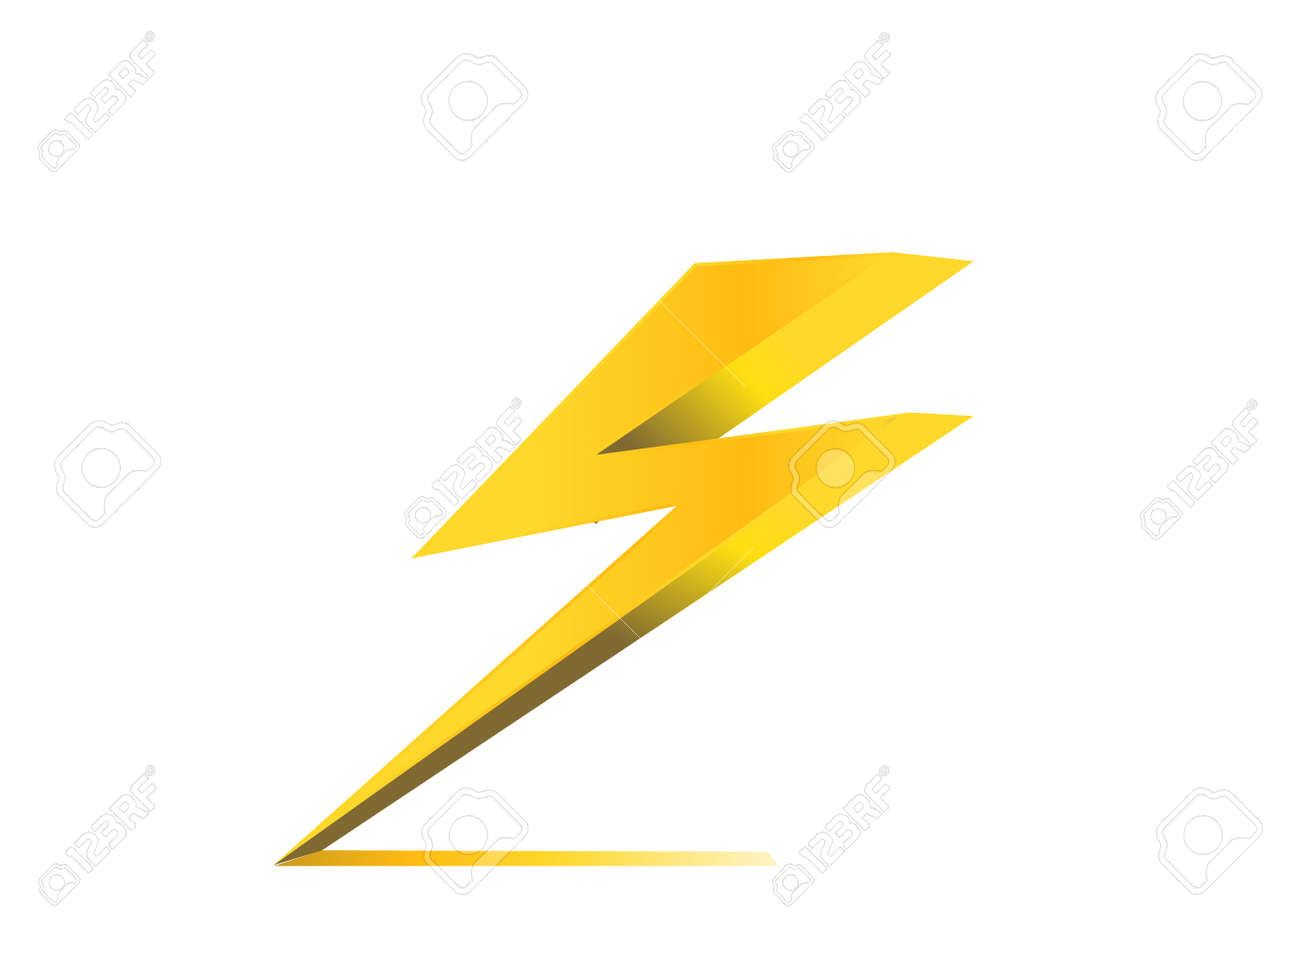 Thunder Electric Charge Symbol Icon Vector Royalty Free Cliparts